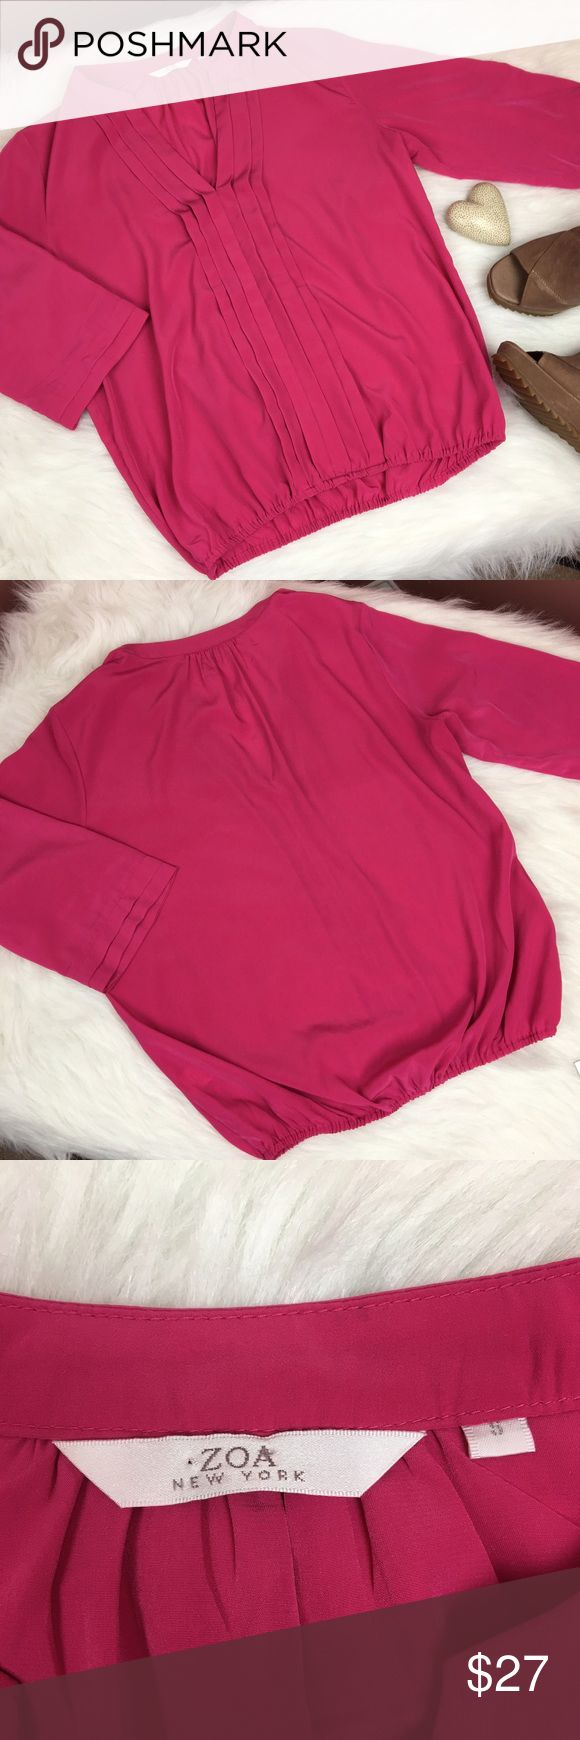 """Zoa New York   hot pink V-neck blouse Zoa New York hot pink V-neck blouse. Feels soft like silk. Half length sleeve. Elastic at bottom. Small mark as shown in photo.   •Approximate measurements laying flat:      •length from shoulder seam 23.5""""      •bust 19"""" across       •waist 14.5"""" relaxed   🌟All offers considered -- Usually countered or accepted! --I 🖤 Bundles! Bundle & make me an offer Anthropologie Tops Blouses"""